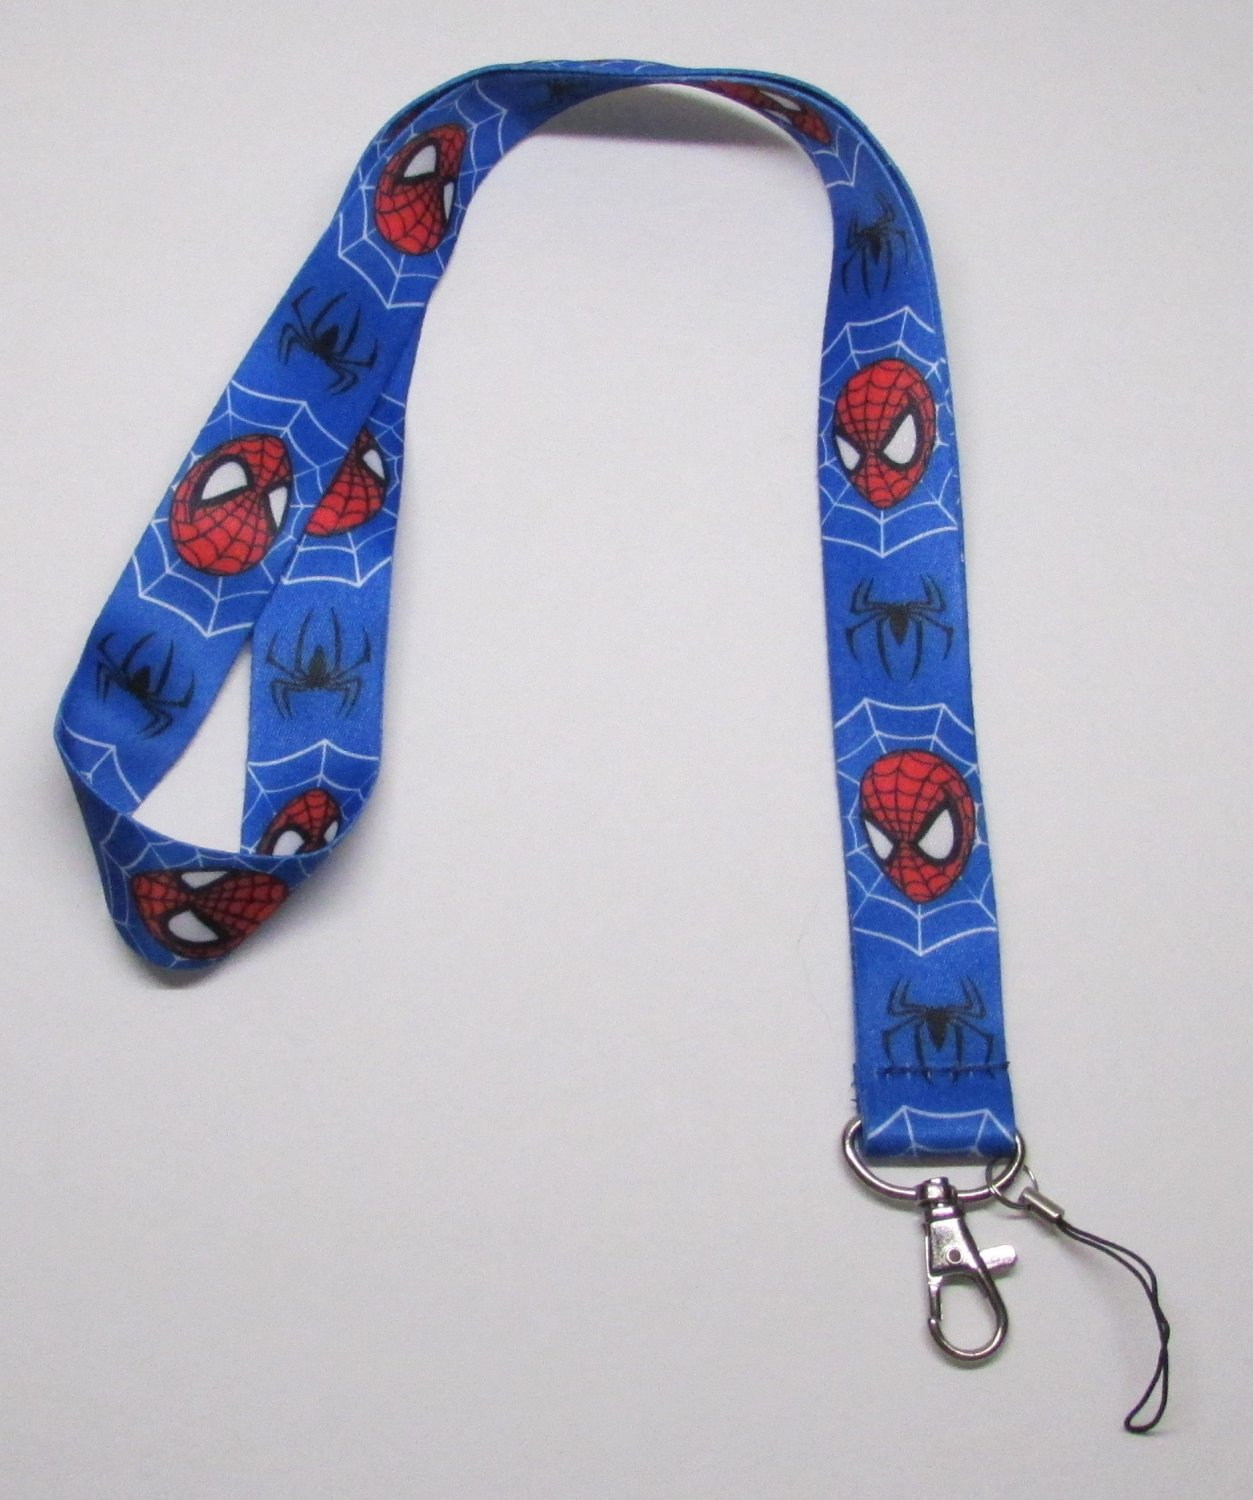 Blue SPIDERMAN LANYARD KEY CHAIN Ring Keychain ID Holder NEW